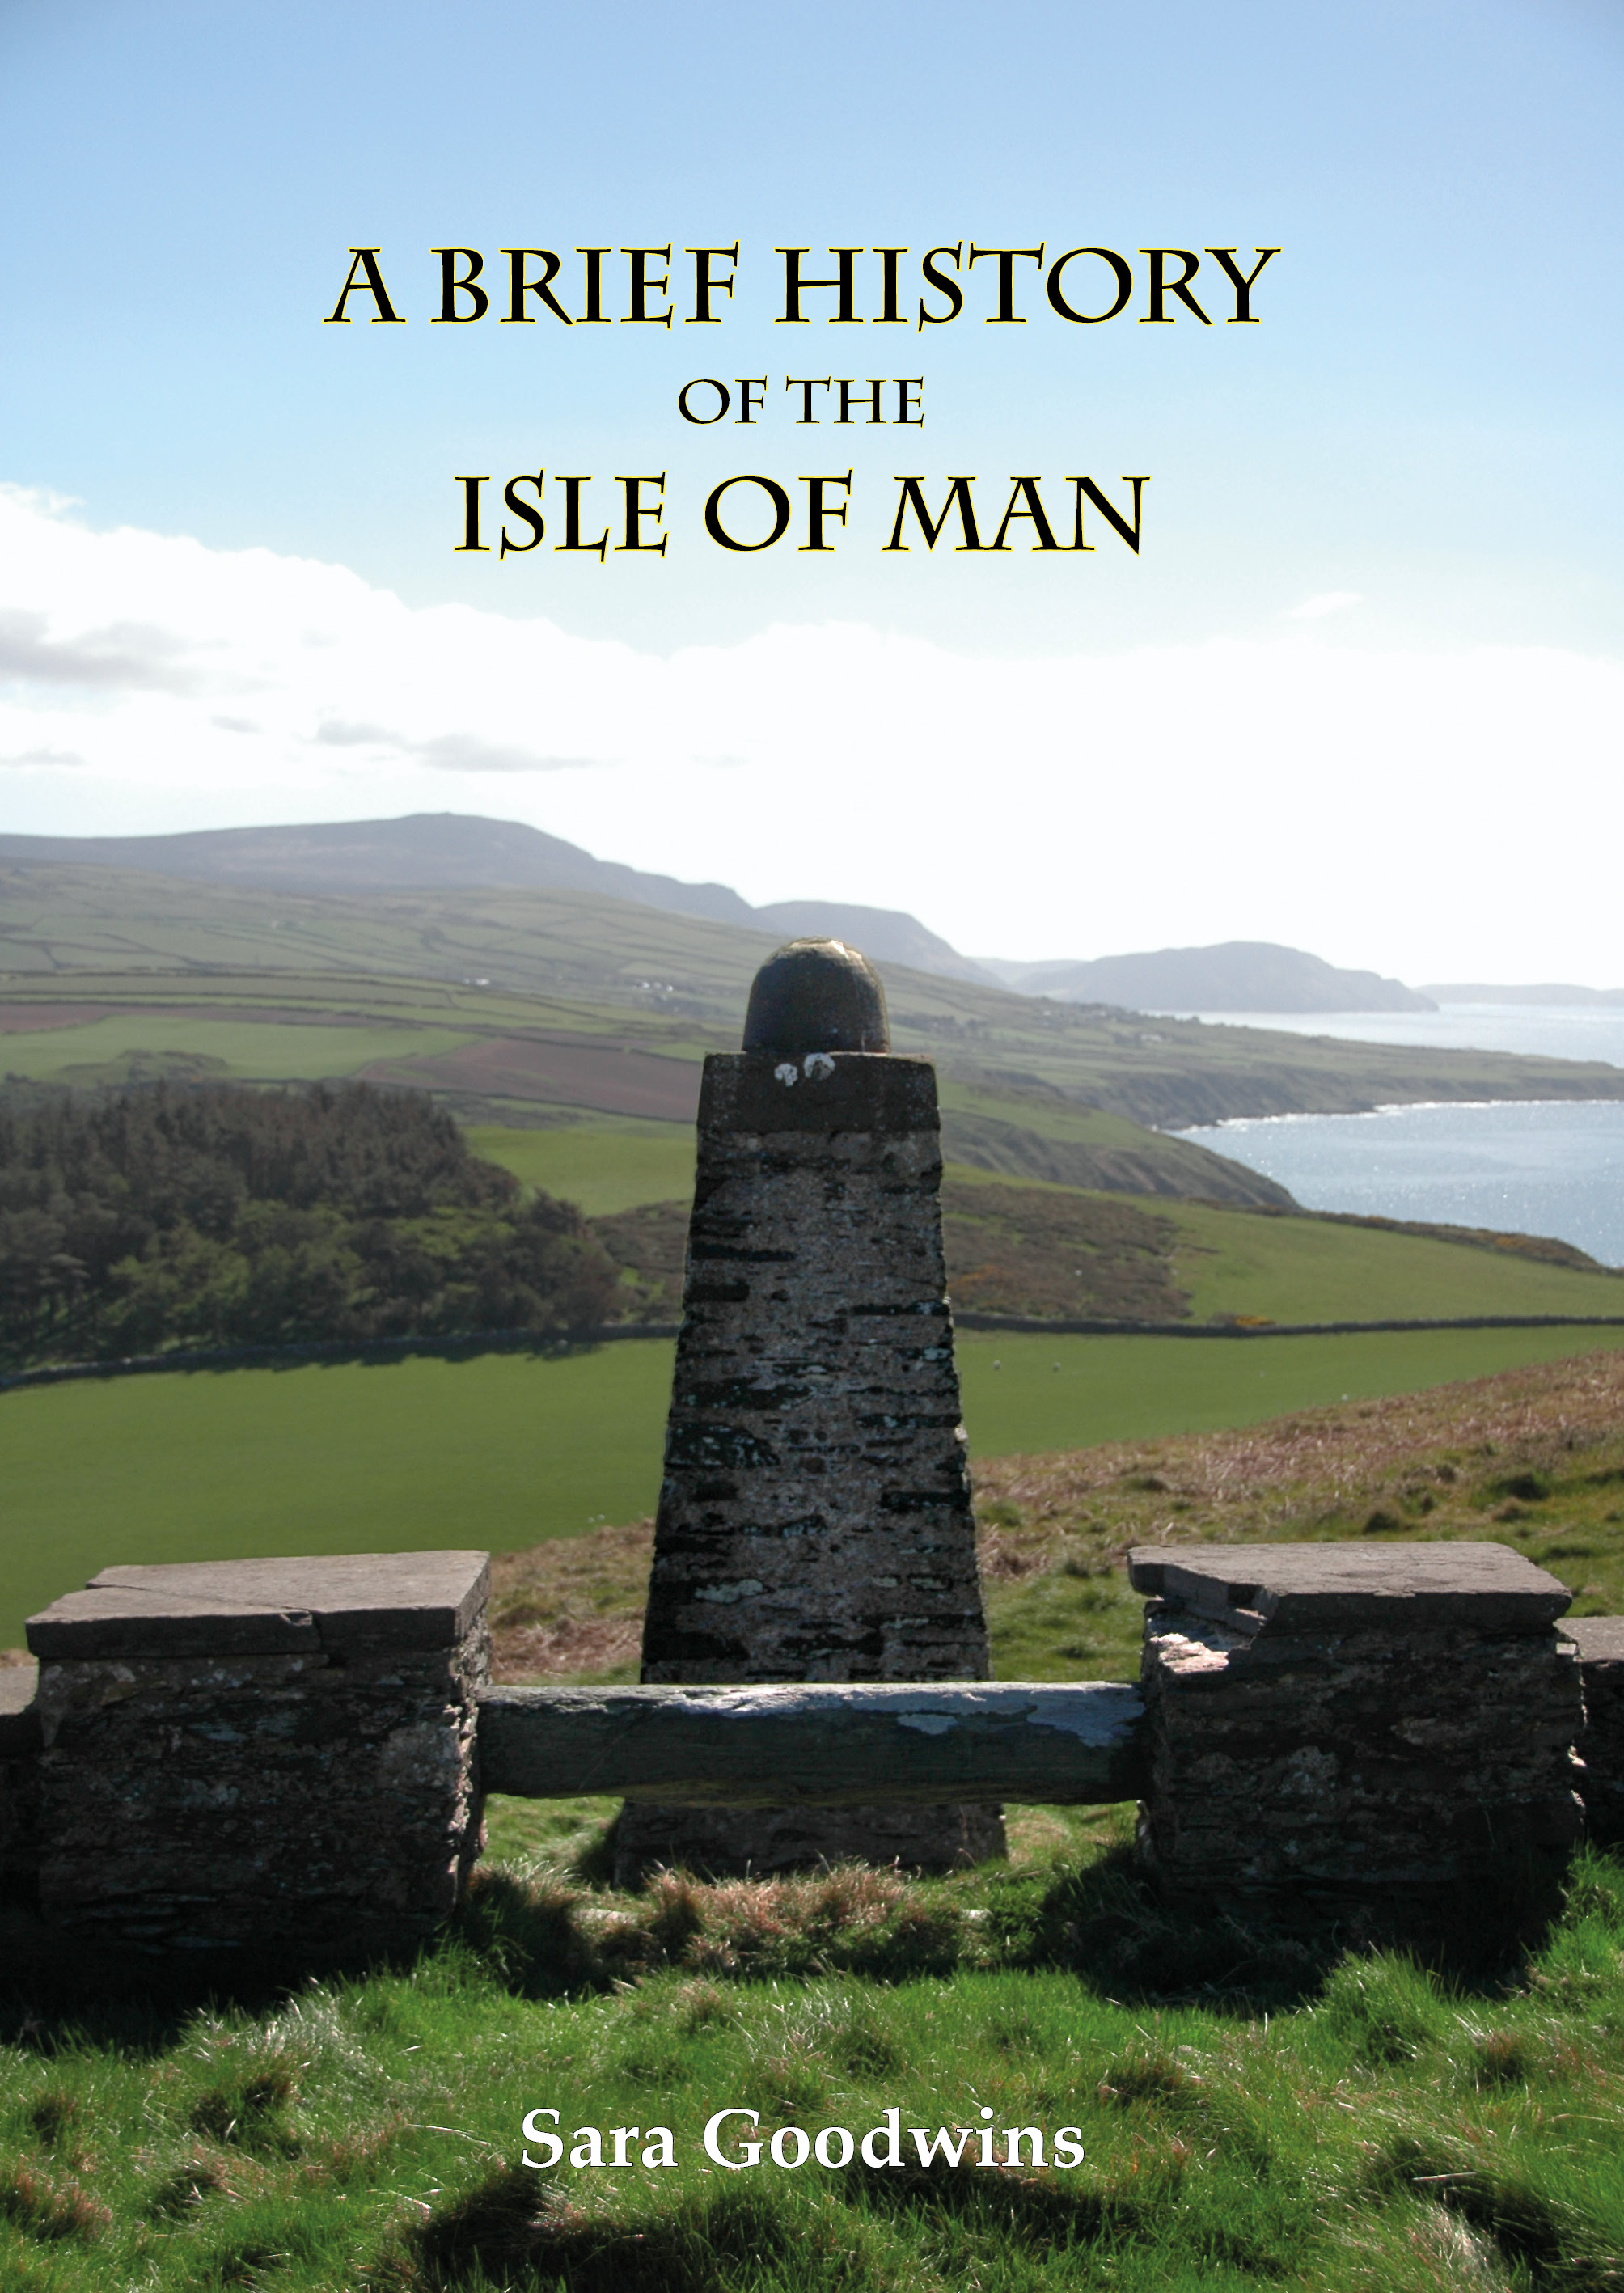 history of isle of man